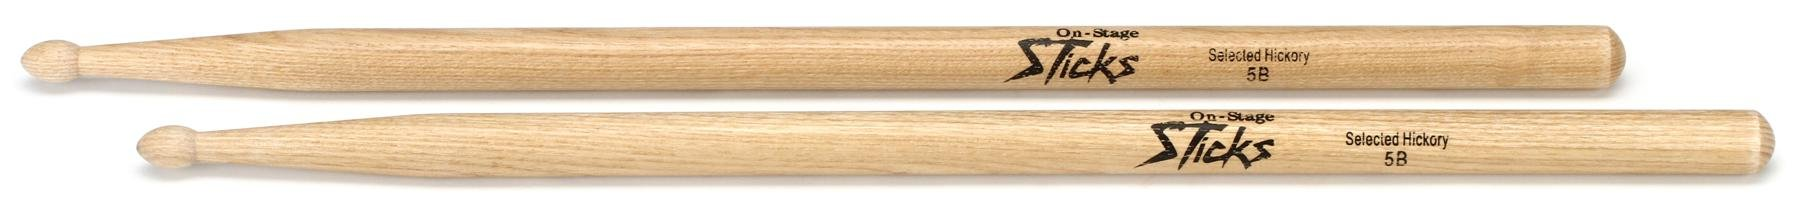 Onstage 5b hickory wood tipped